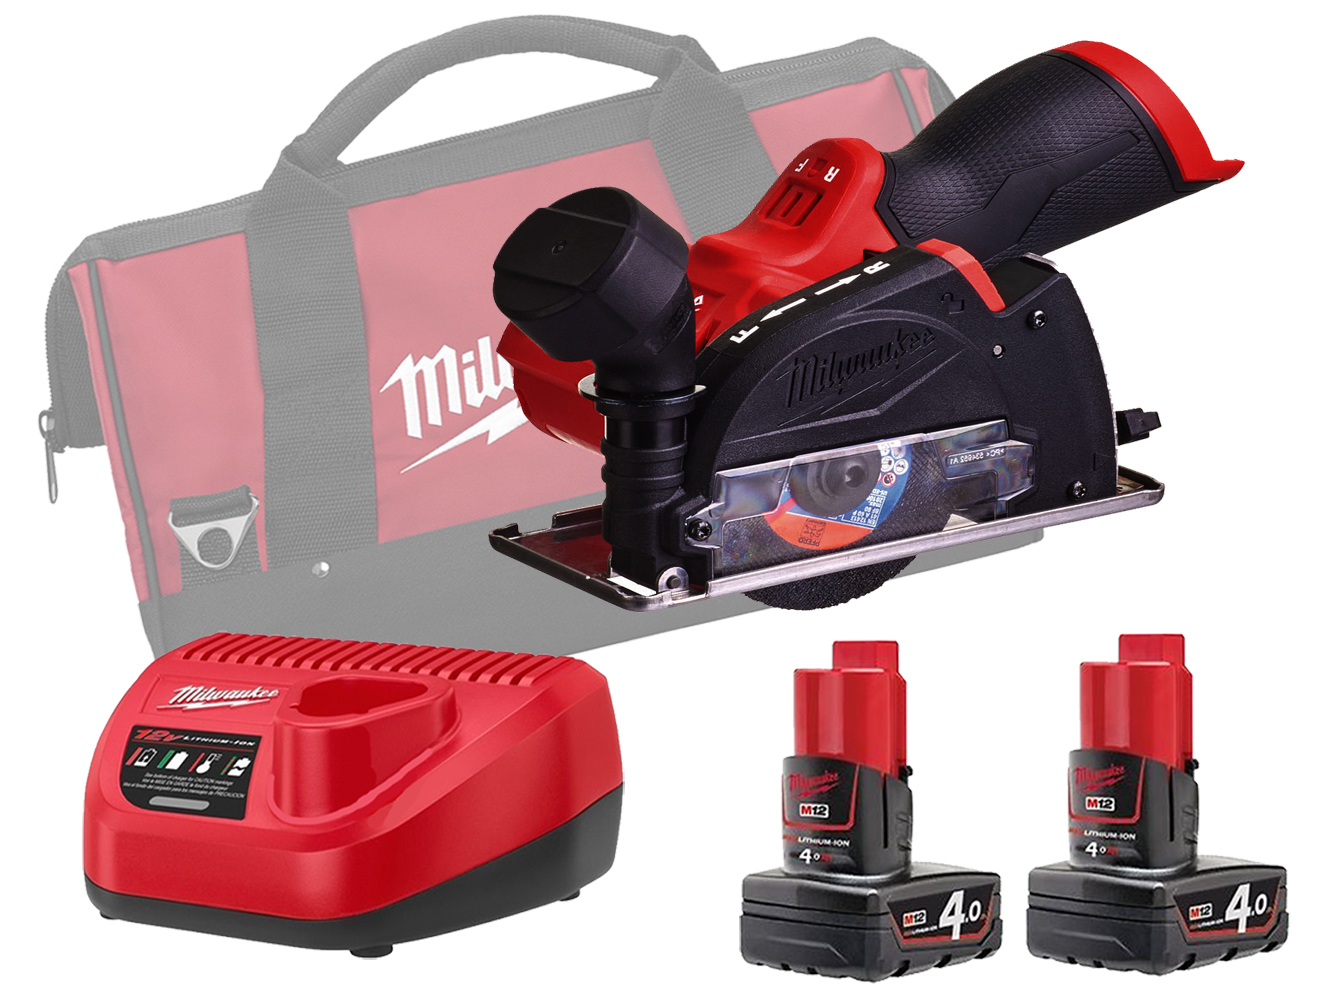 Milwaukee M12FCOT 12V FUEL Sub Compact Multi-Material Cut-Off Tool - 4.0ah Pack